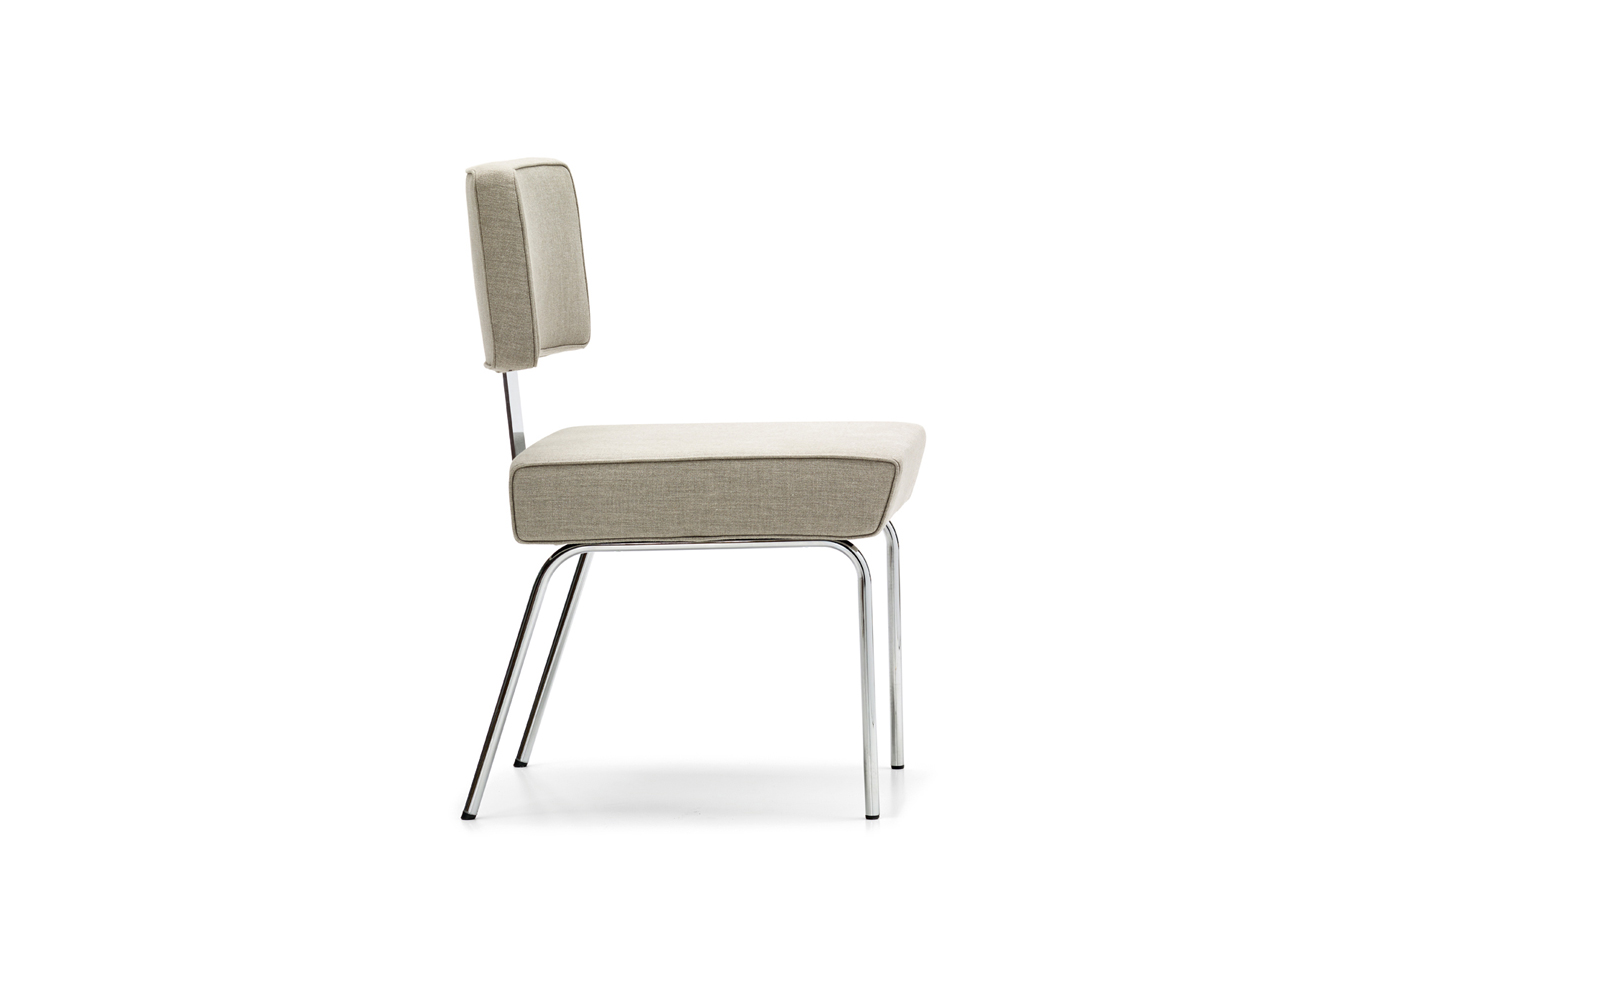 Tremaine Side Chair Steel by Richard J. Neutra for VS